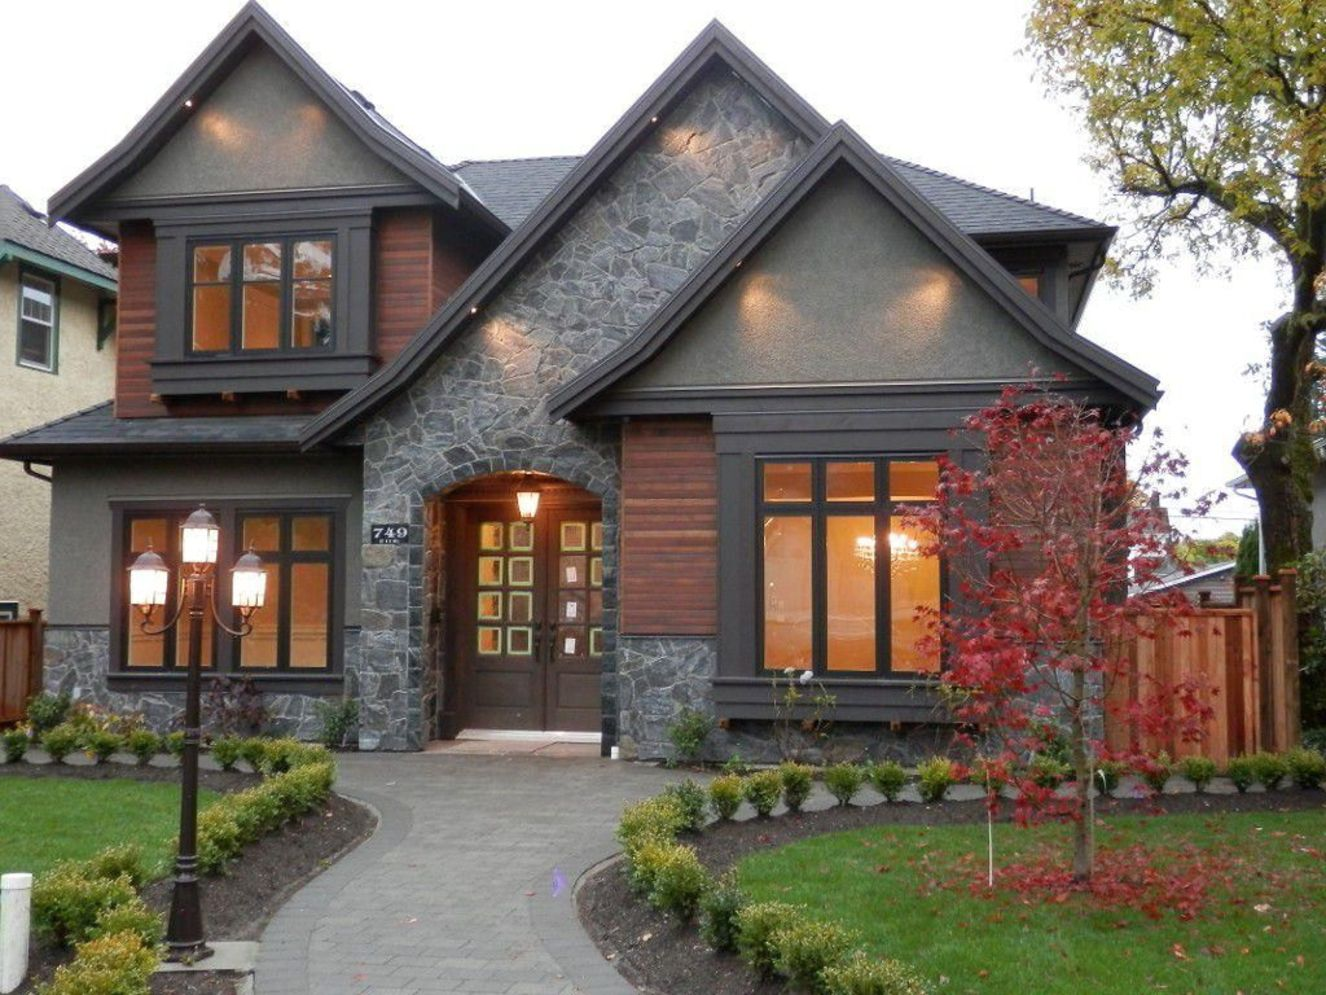 Modern house with new farmhouse exterior design pulling out country charm and warm welcoming display Image 29